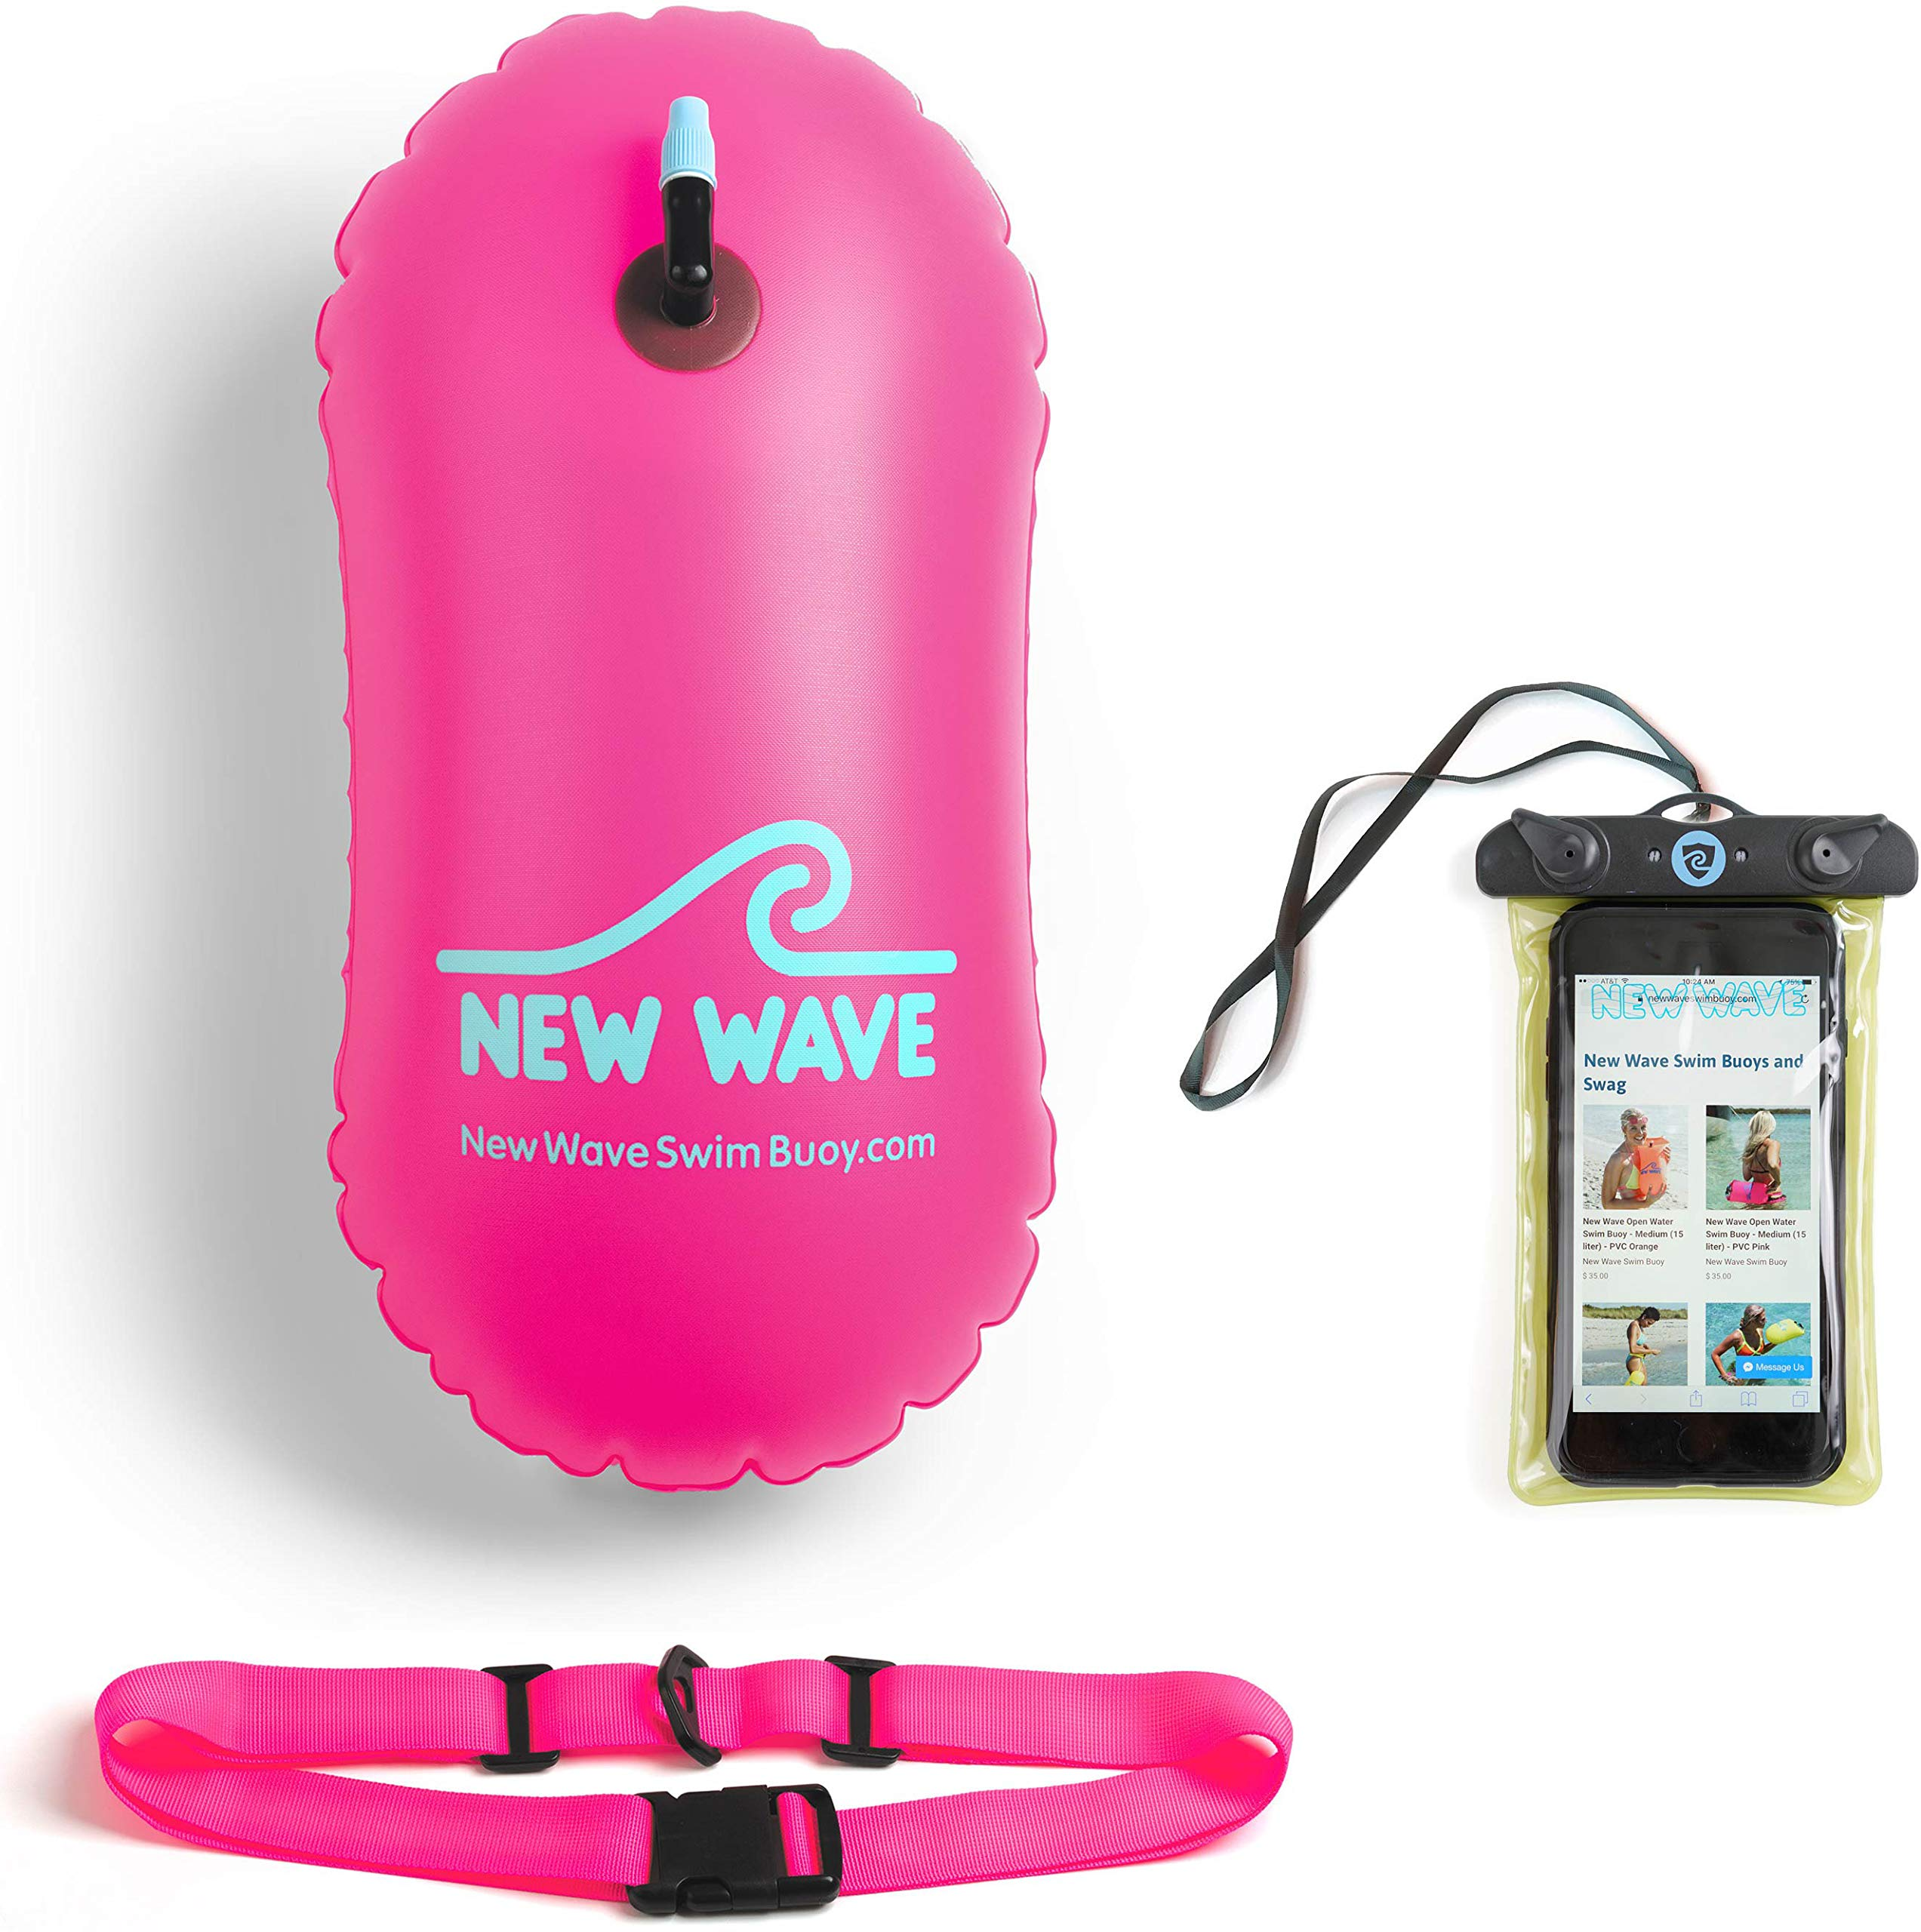 New Wave Swim Bubble for Open Water Swimmers and Triathletes - No Dry-Bag - Waterproof Phone Case & Swim Bubble Bundle (Pink)